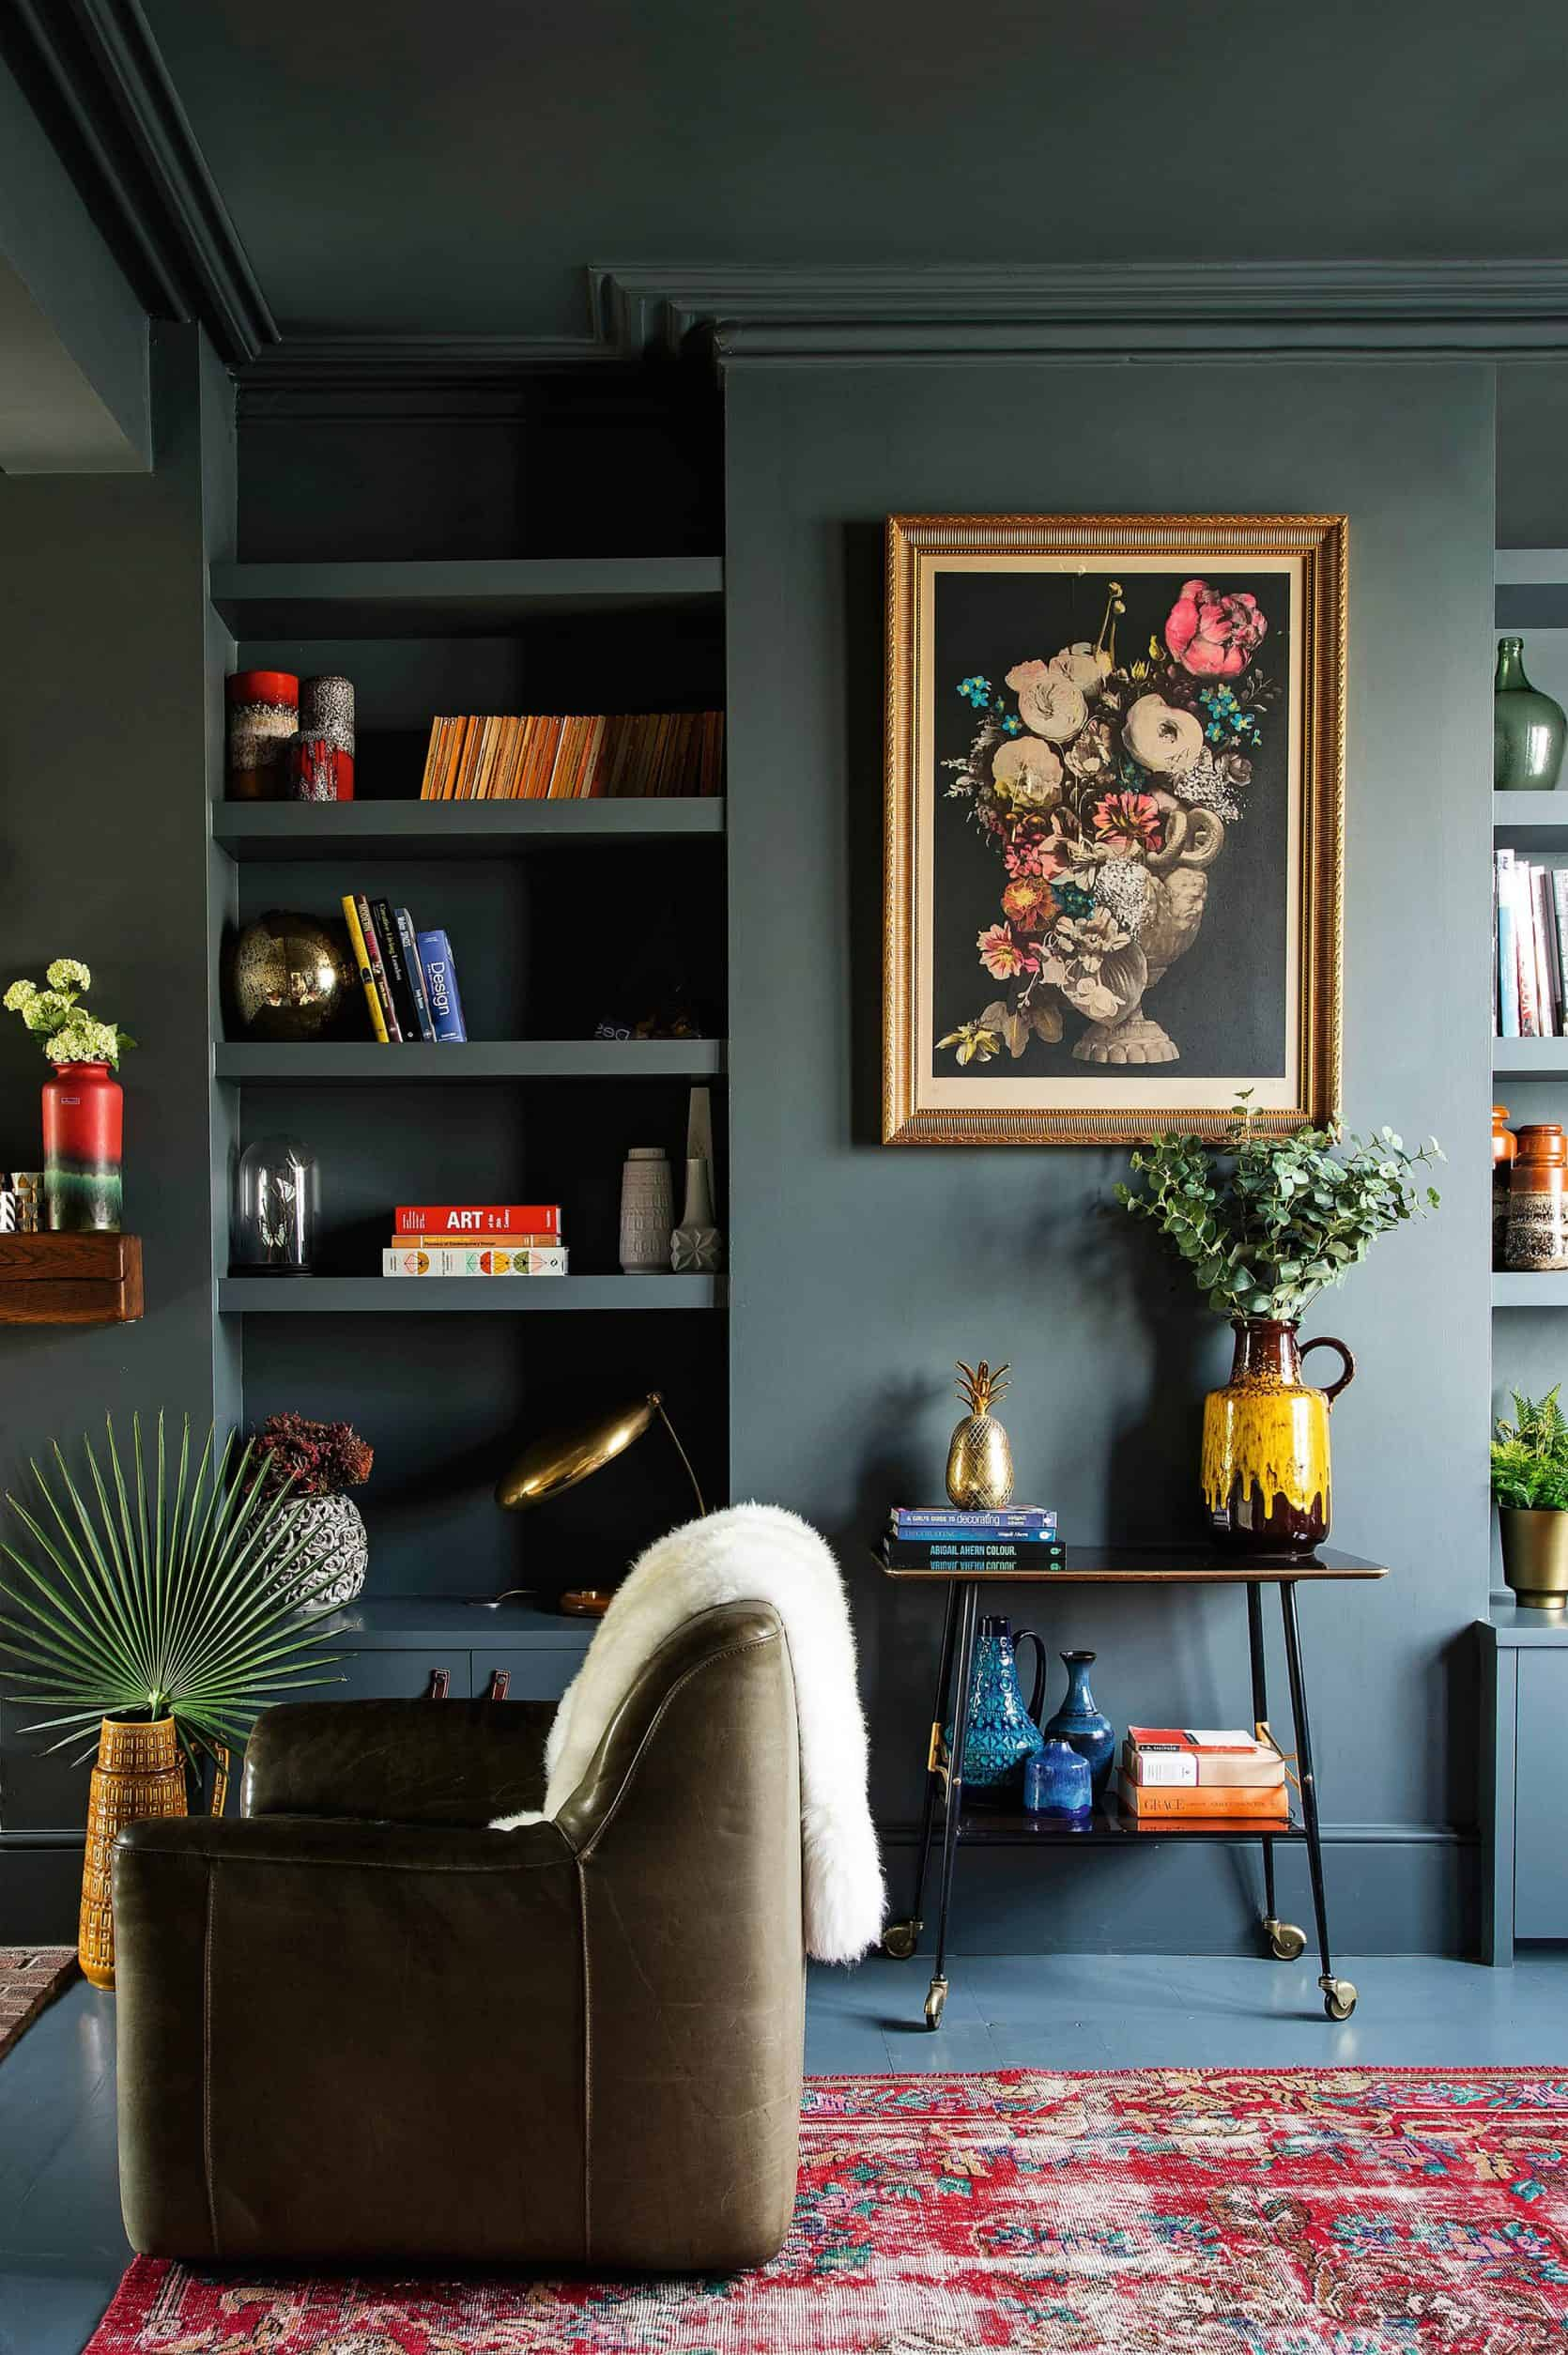 Are Dark Green Walls The New White Walls Short Answer